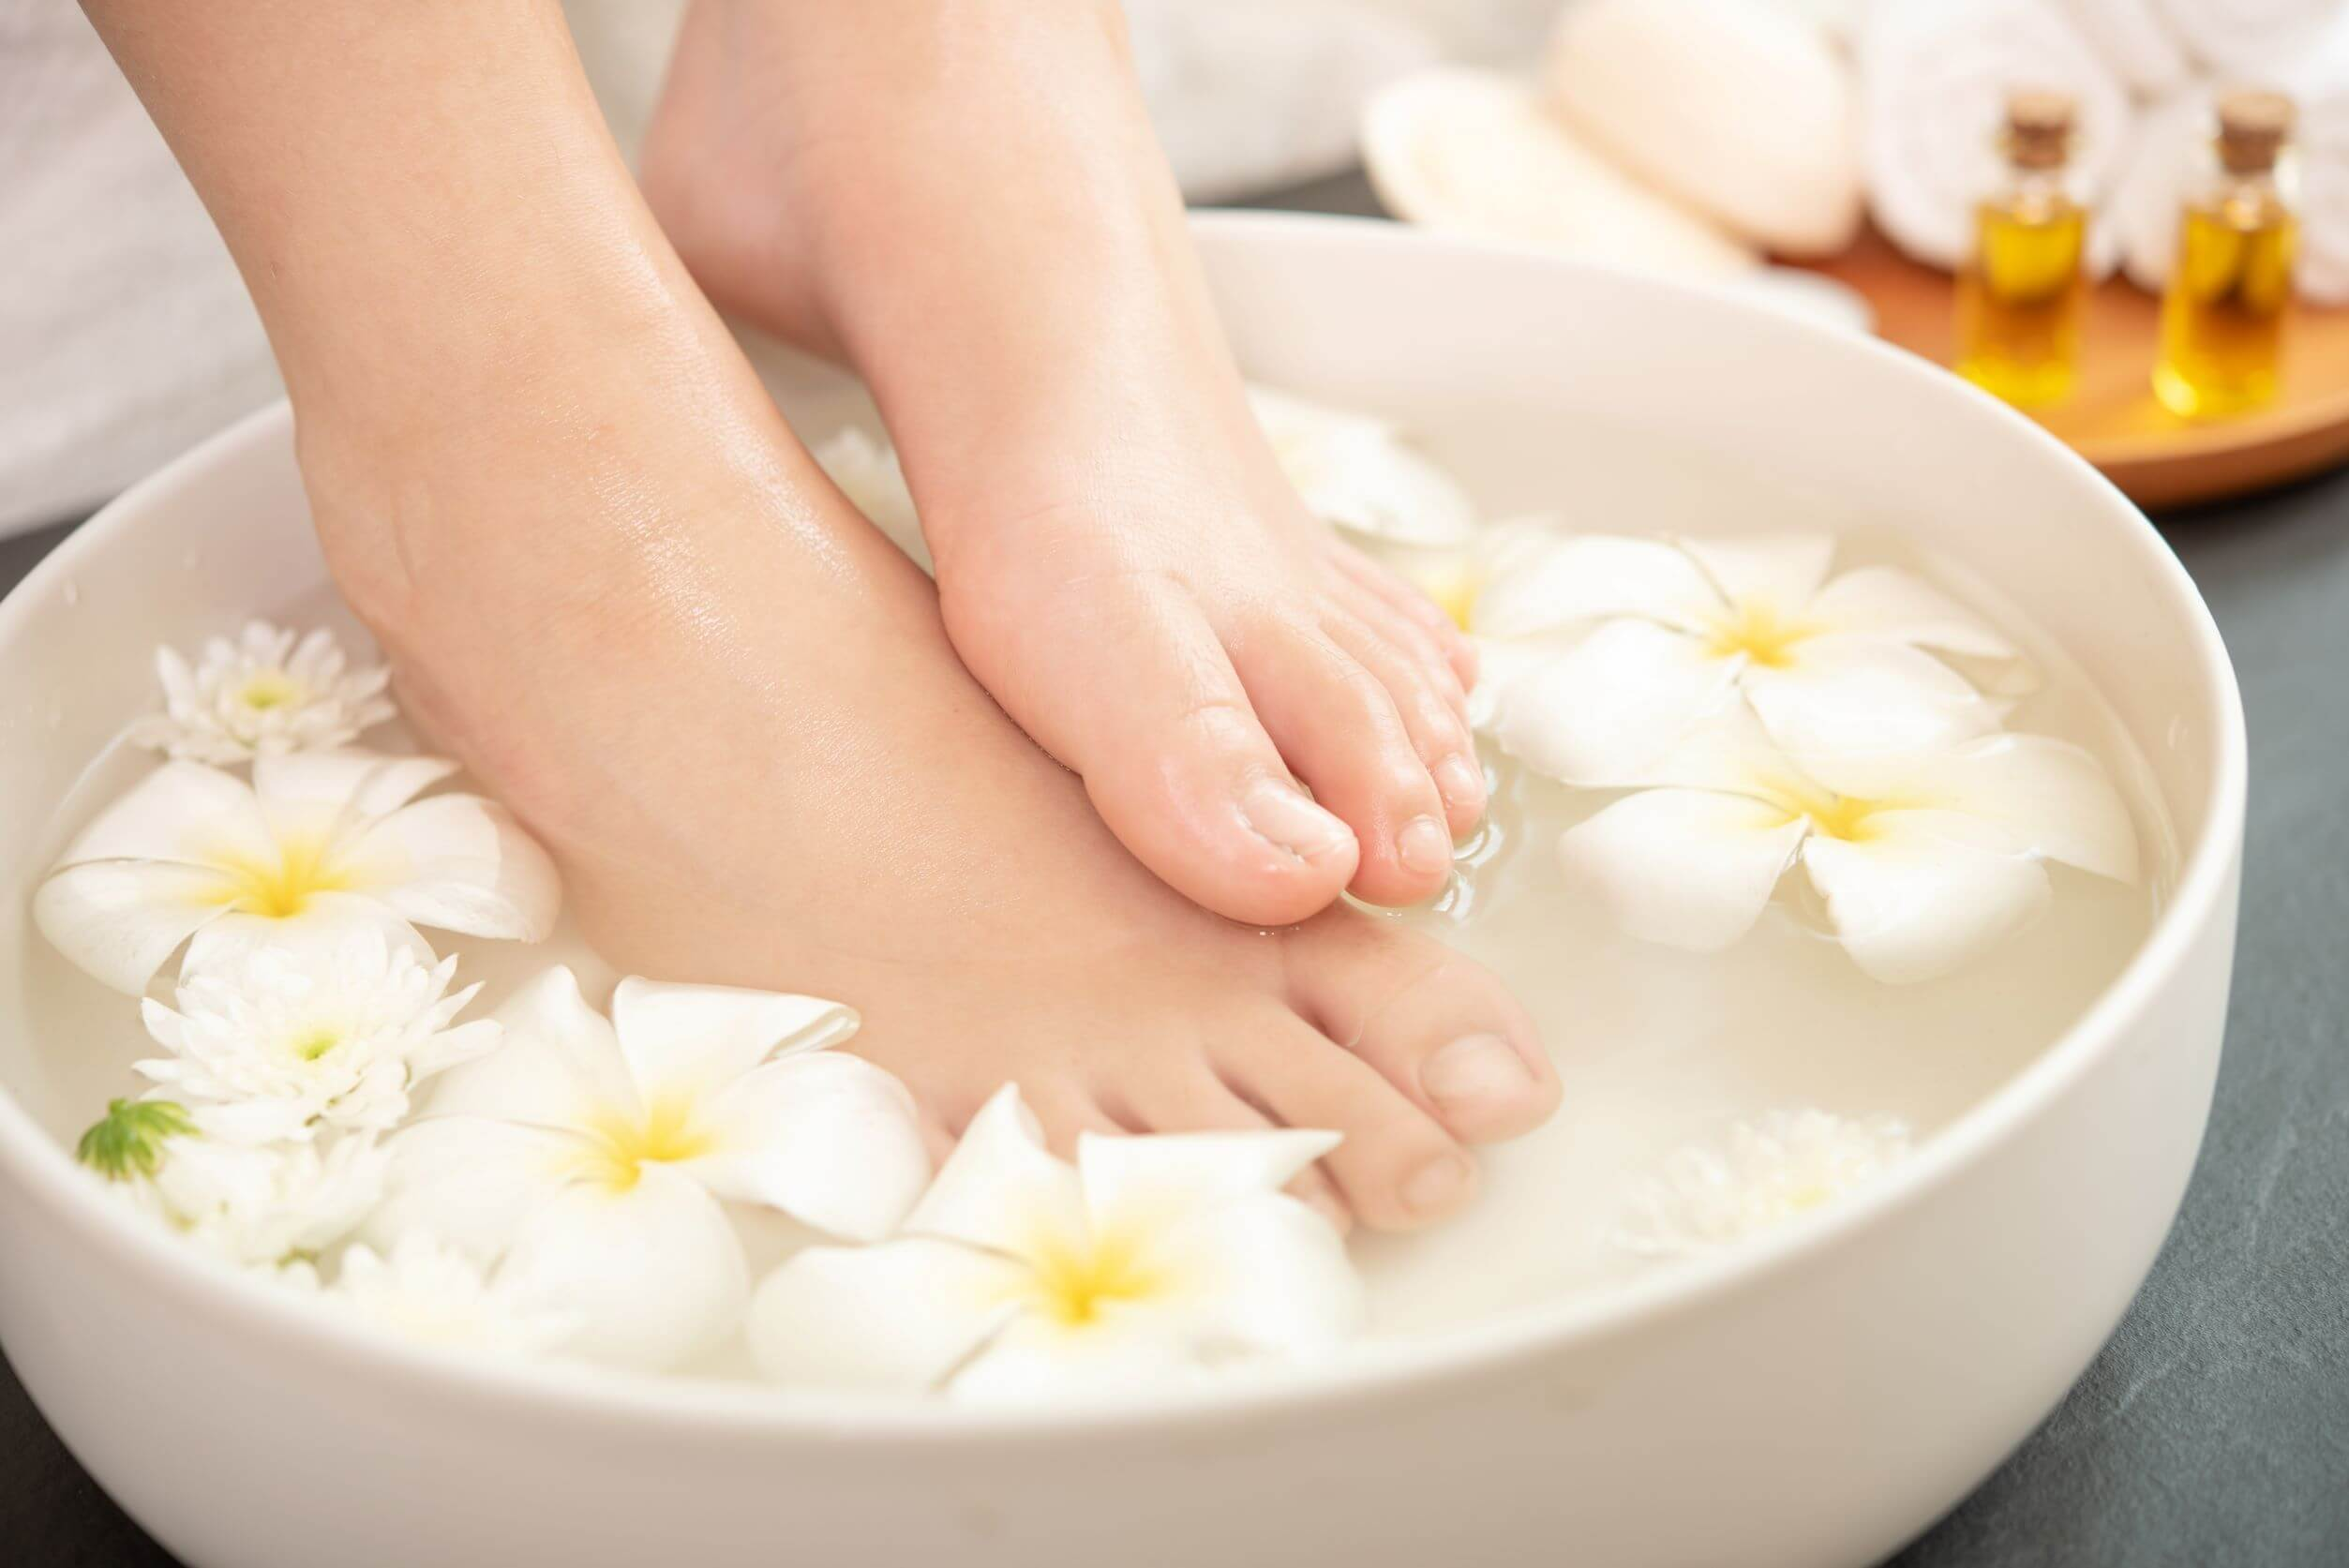 Home Foot Spa